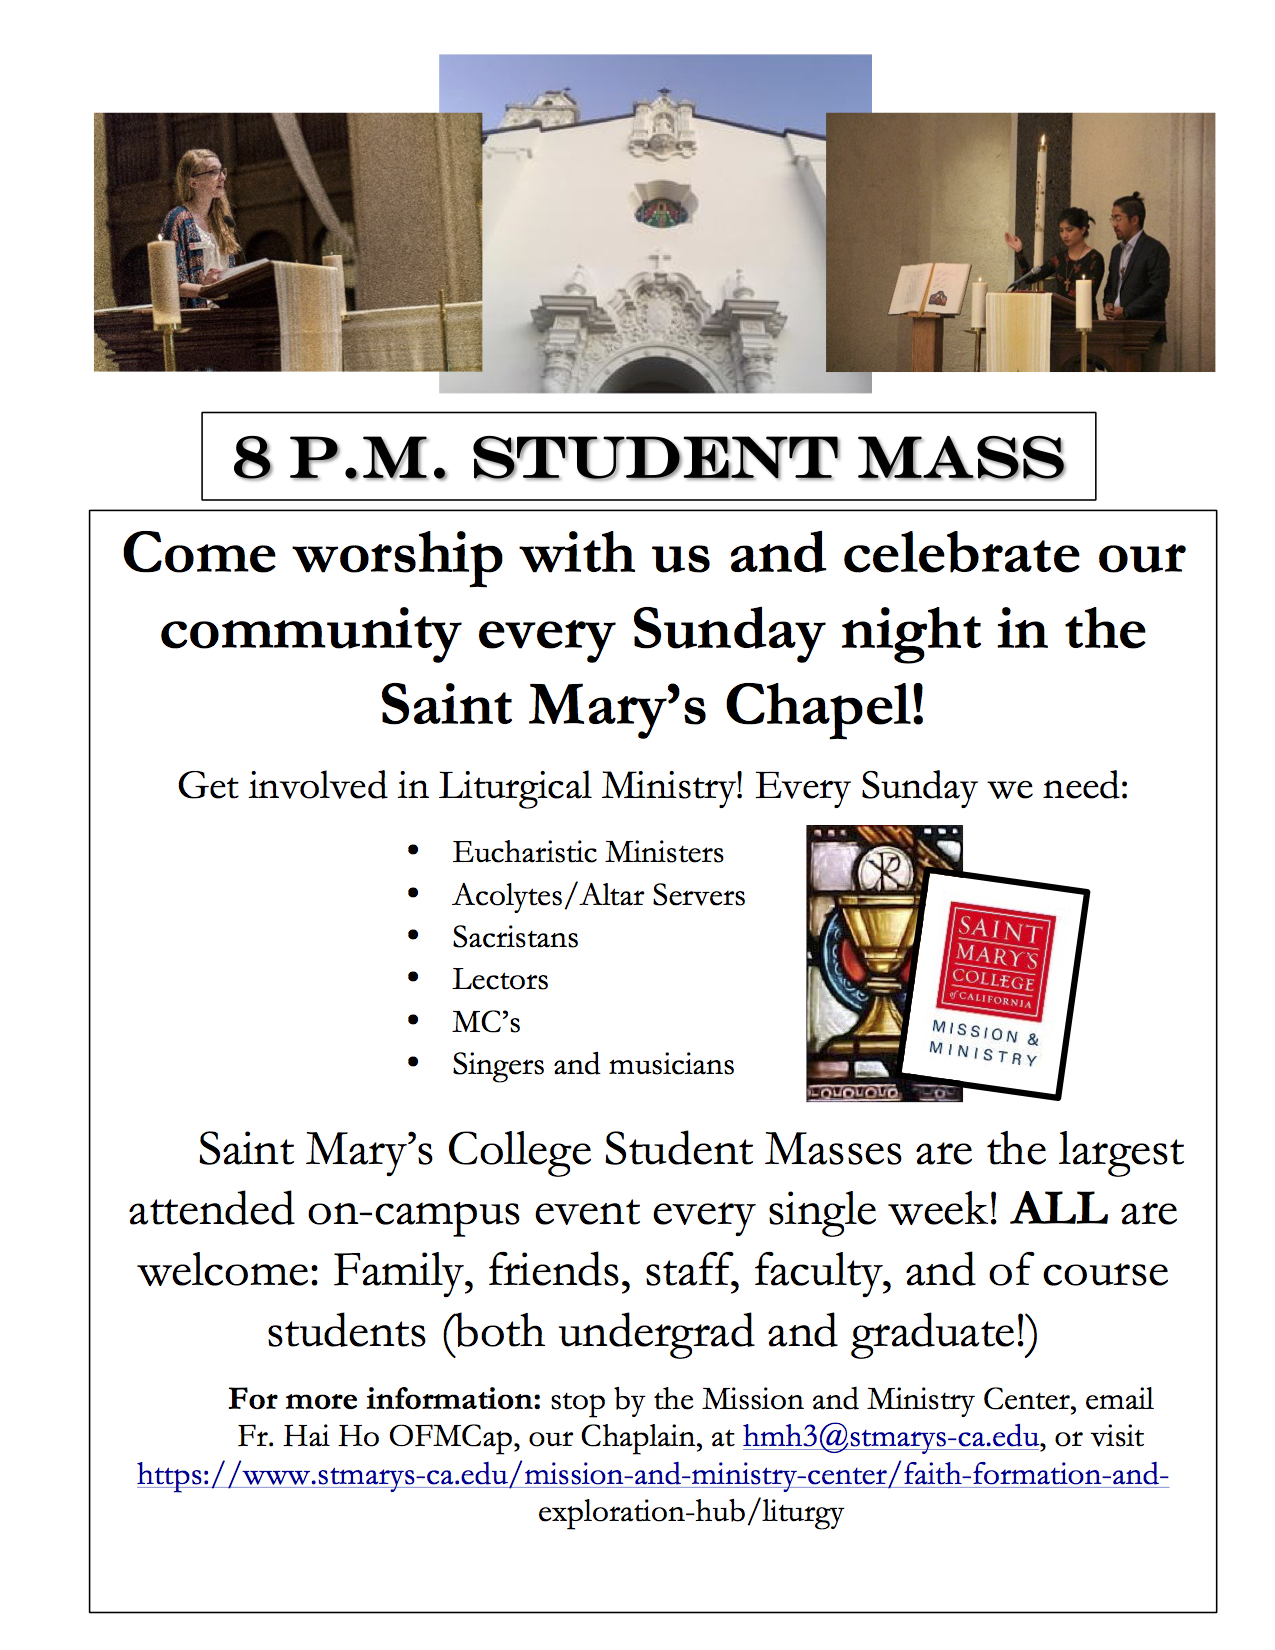 8pm Student Mass: Come worship with us and celebrate our community every Sunday night in the Saint Mary's Chapel!Get involved in Liturgical Ministry! Every Sunday we need:• Eucharistic Ministers• Acolytes/Altar Servers• Sacristans• Lectors• MC's• Singers and musiciansSaint Mary's College Student Masses are the largest attended on-campus event every single week! ALL are welcome: Family, friends, staff, faculty, and of course students (both undergrad and graduate!)